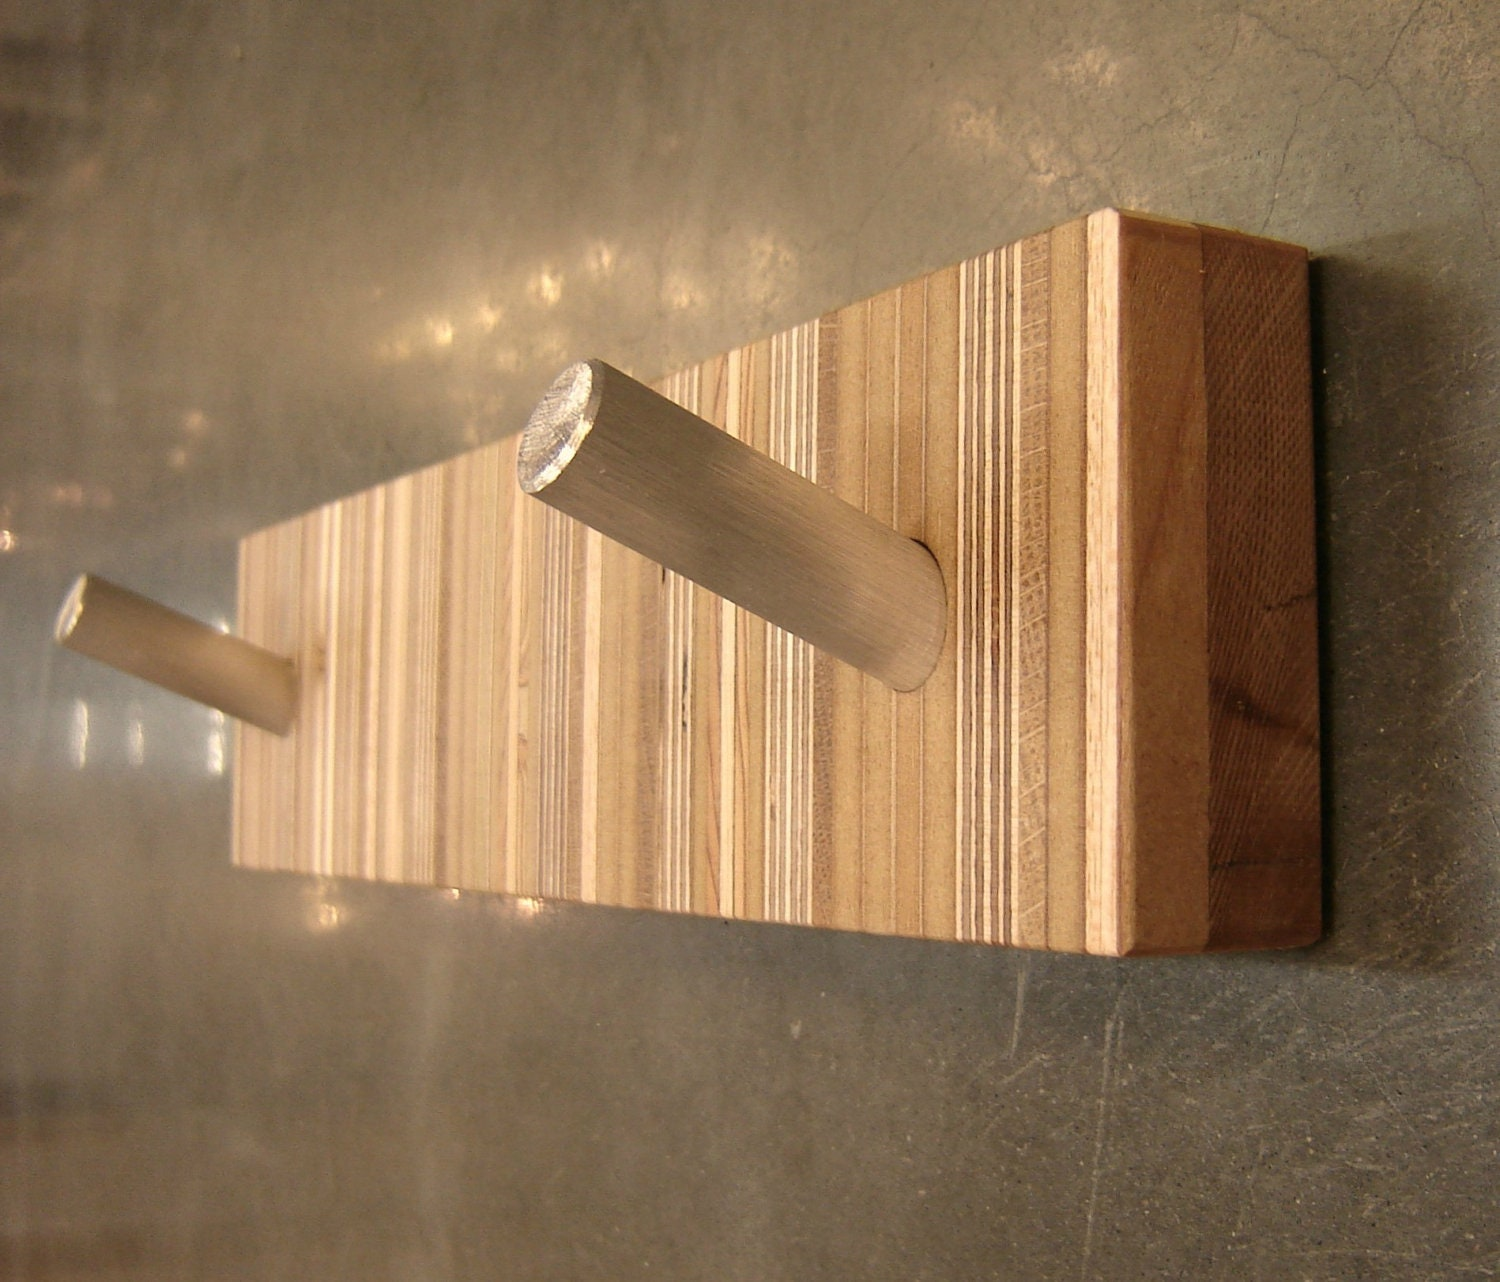 Robe Hook / Towel Hook Bath Decor in Reclaimed Wood